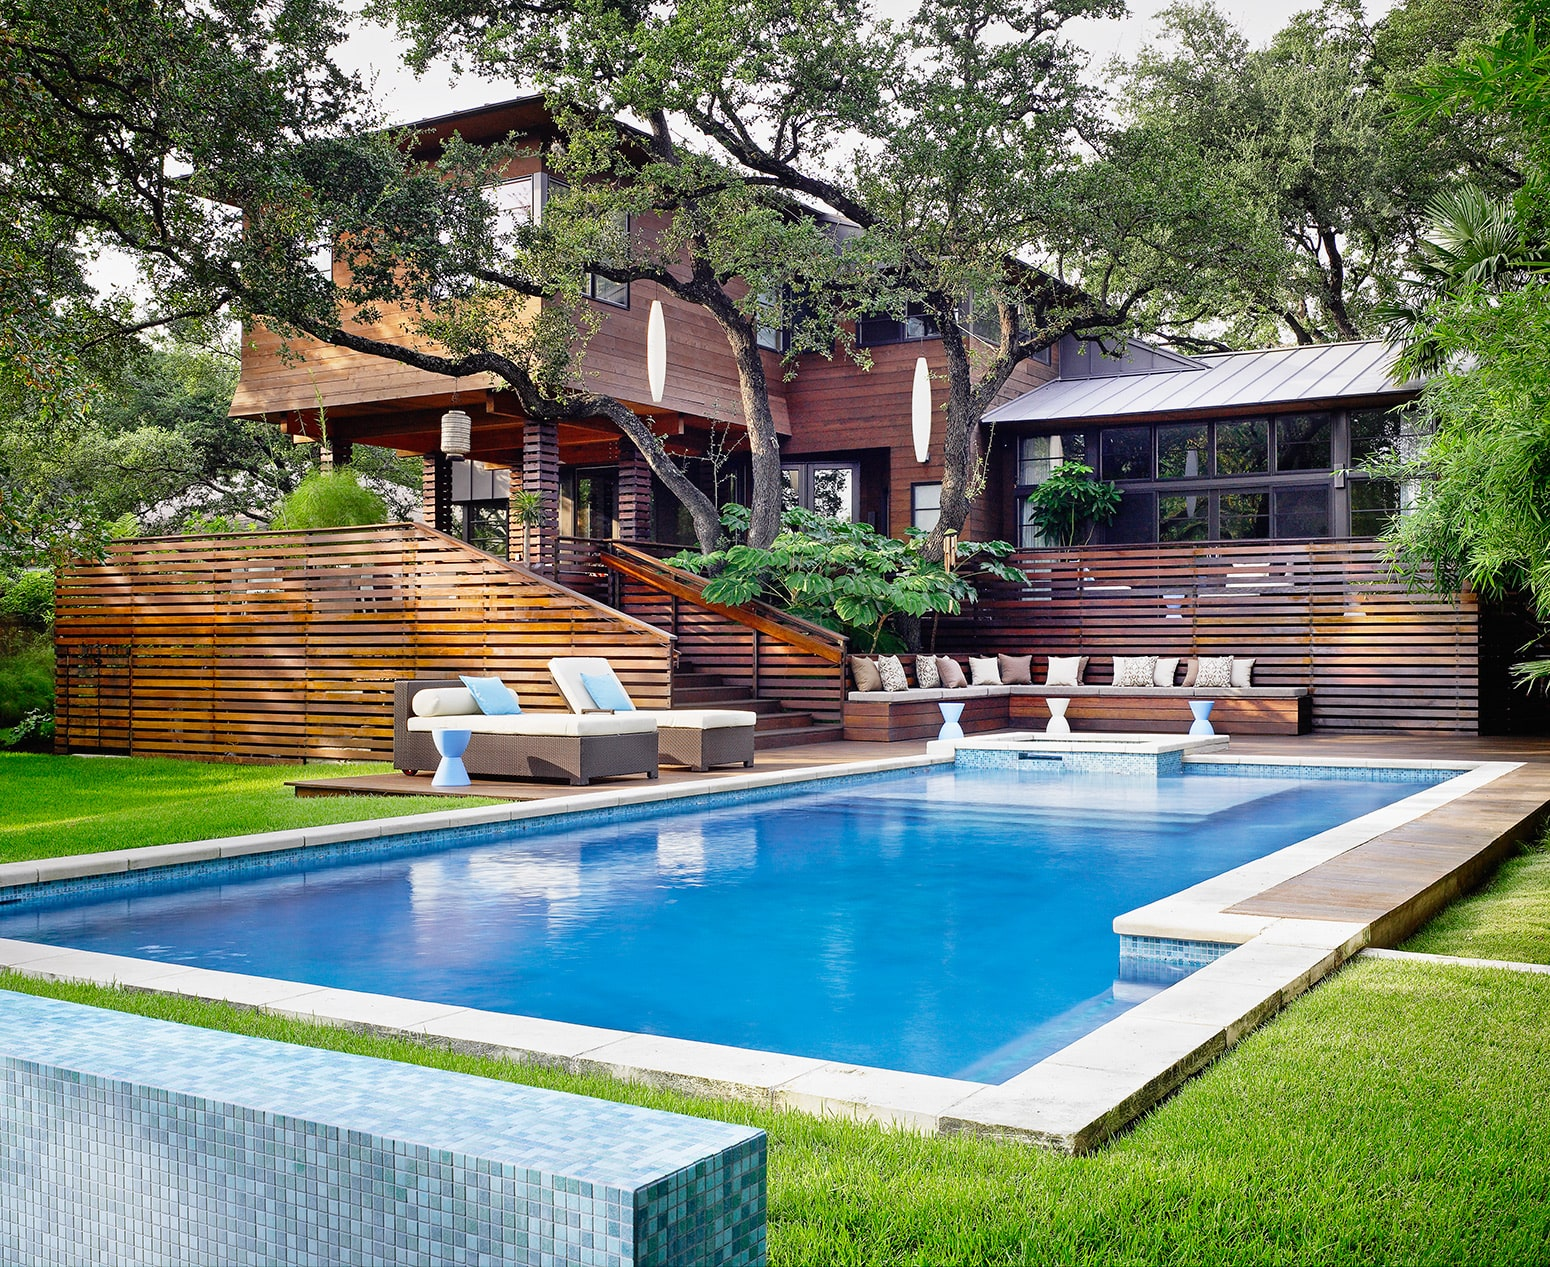 Tarrytown House - Architect Firm in Austin